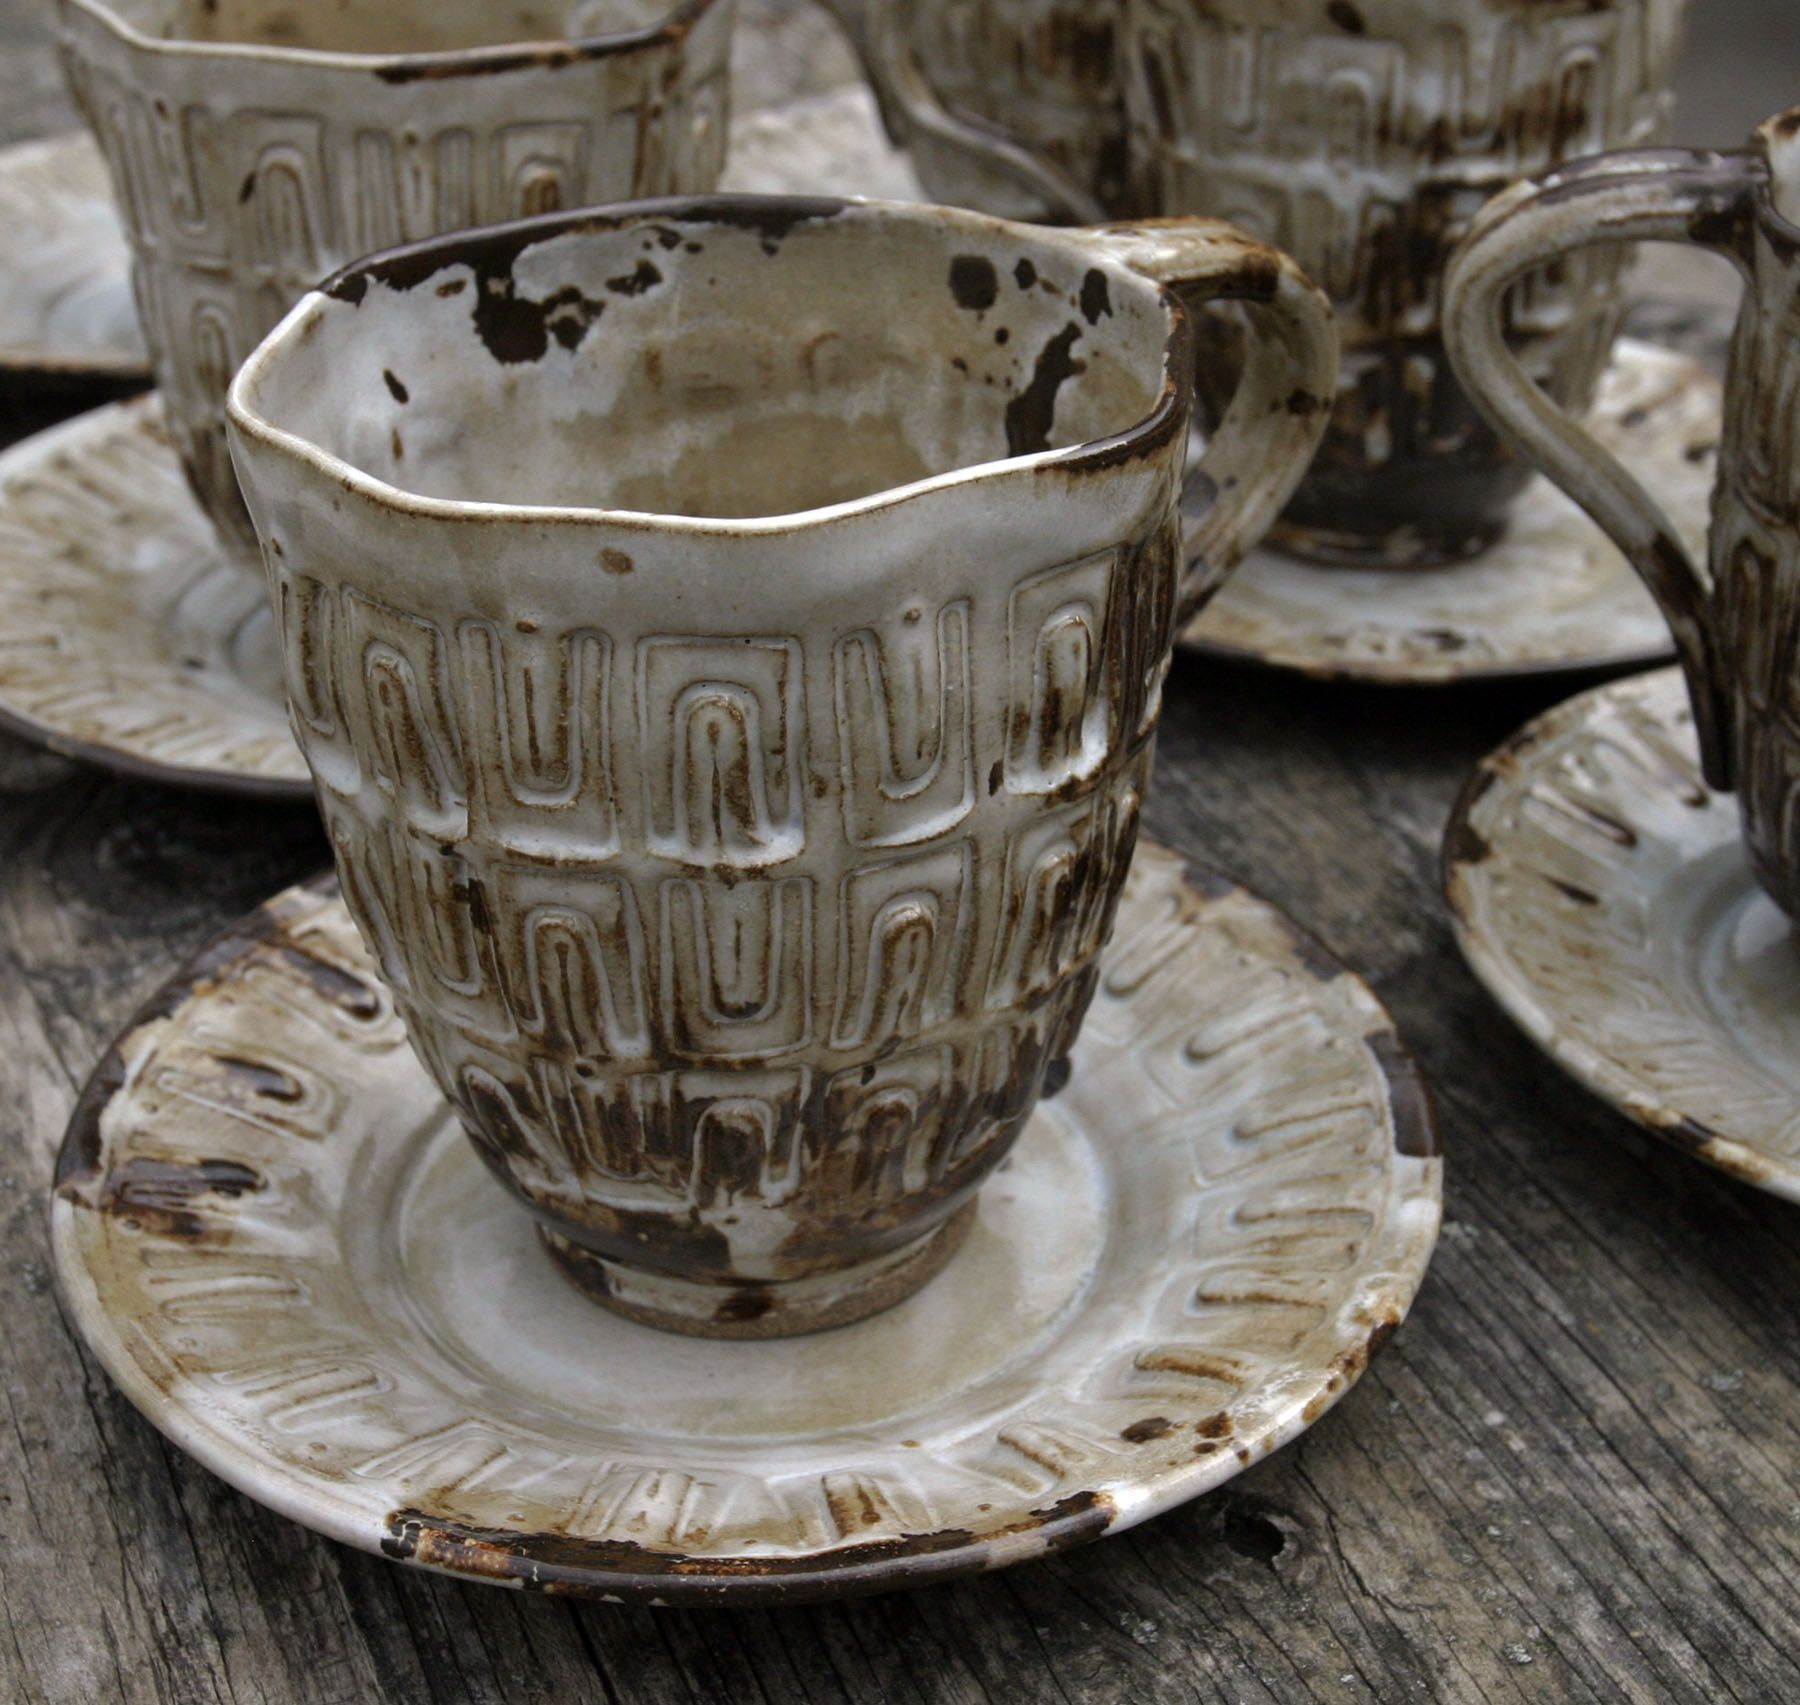 Industrial Rustic Cups and Saucers.  Mark Strayer, North Star Pottery